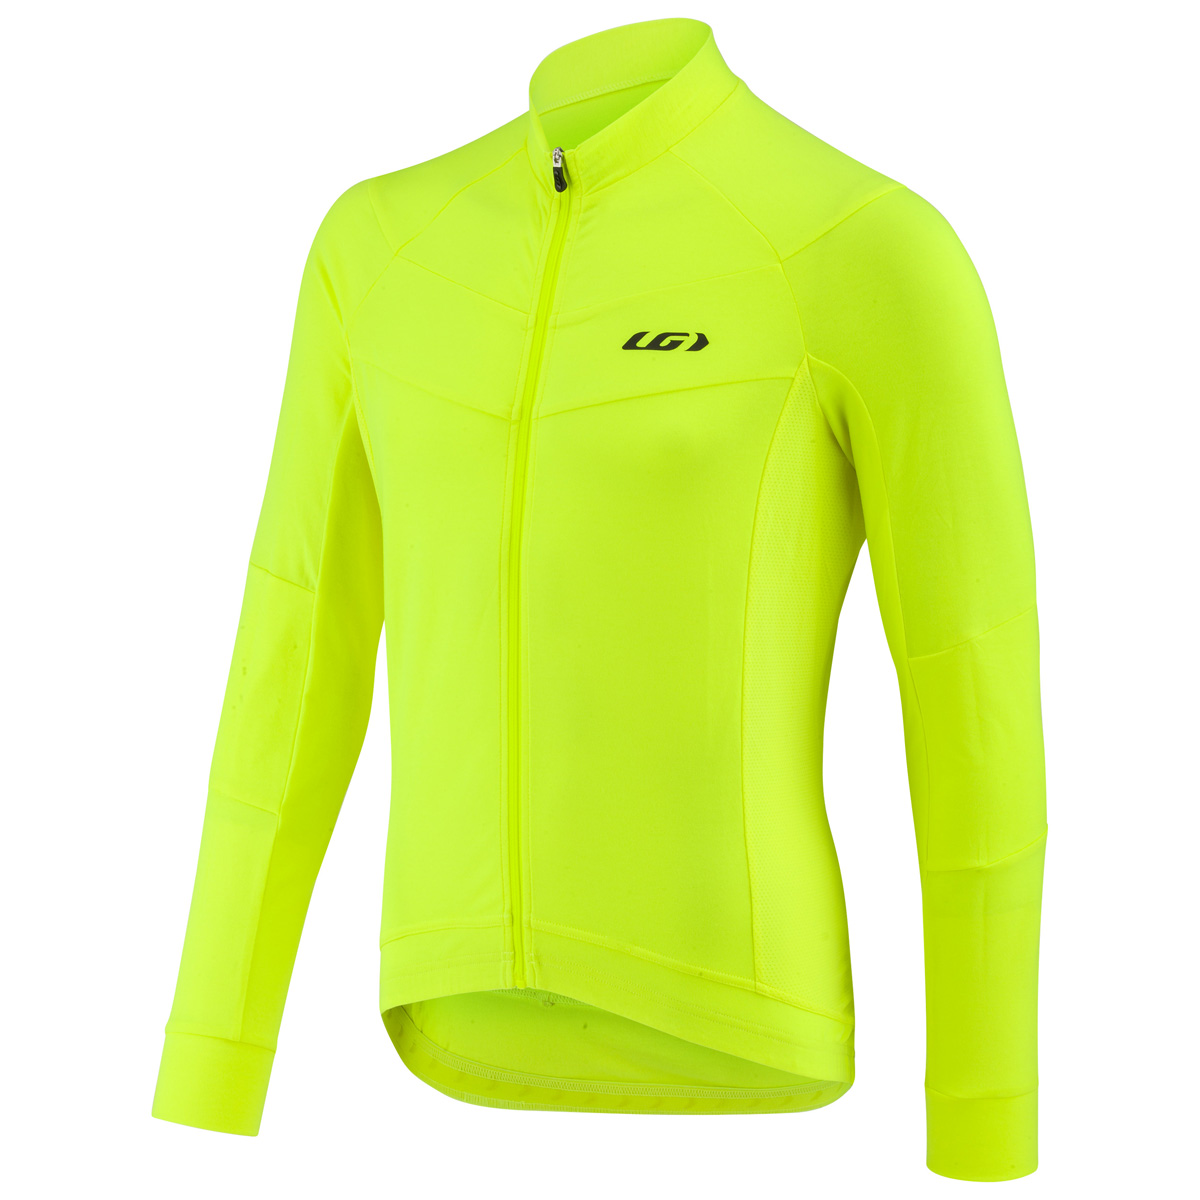 eef593183 Louis Garneau 2019 Men s Lemmon Long Sleeve Cycling Jersey - 1023455 ...